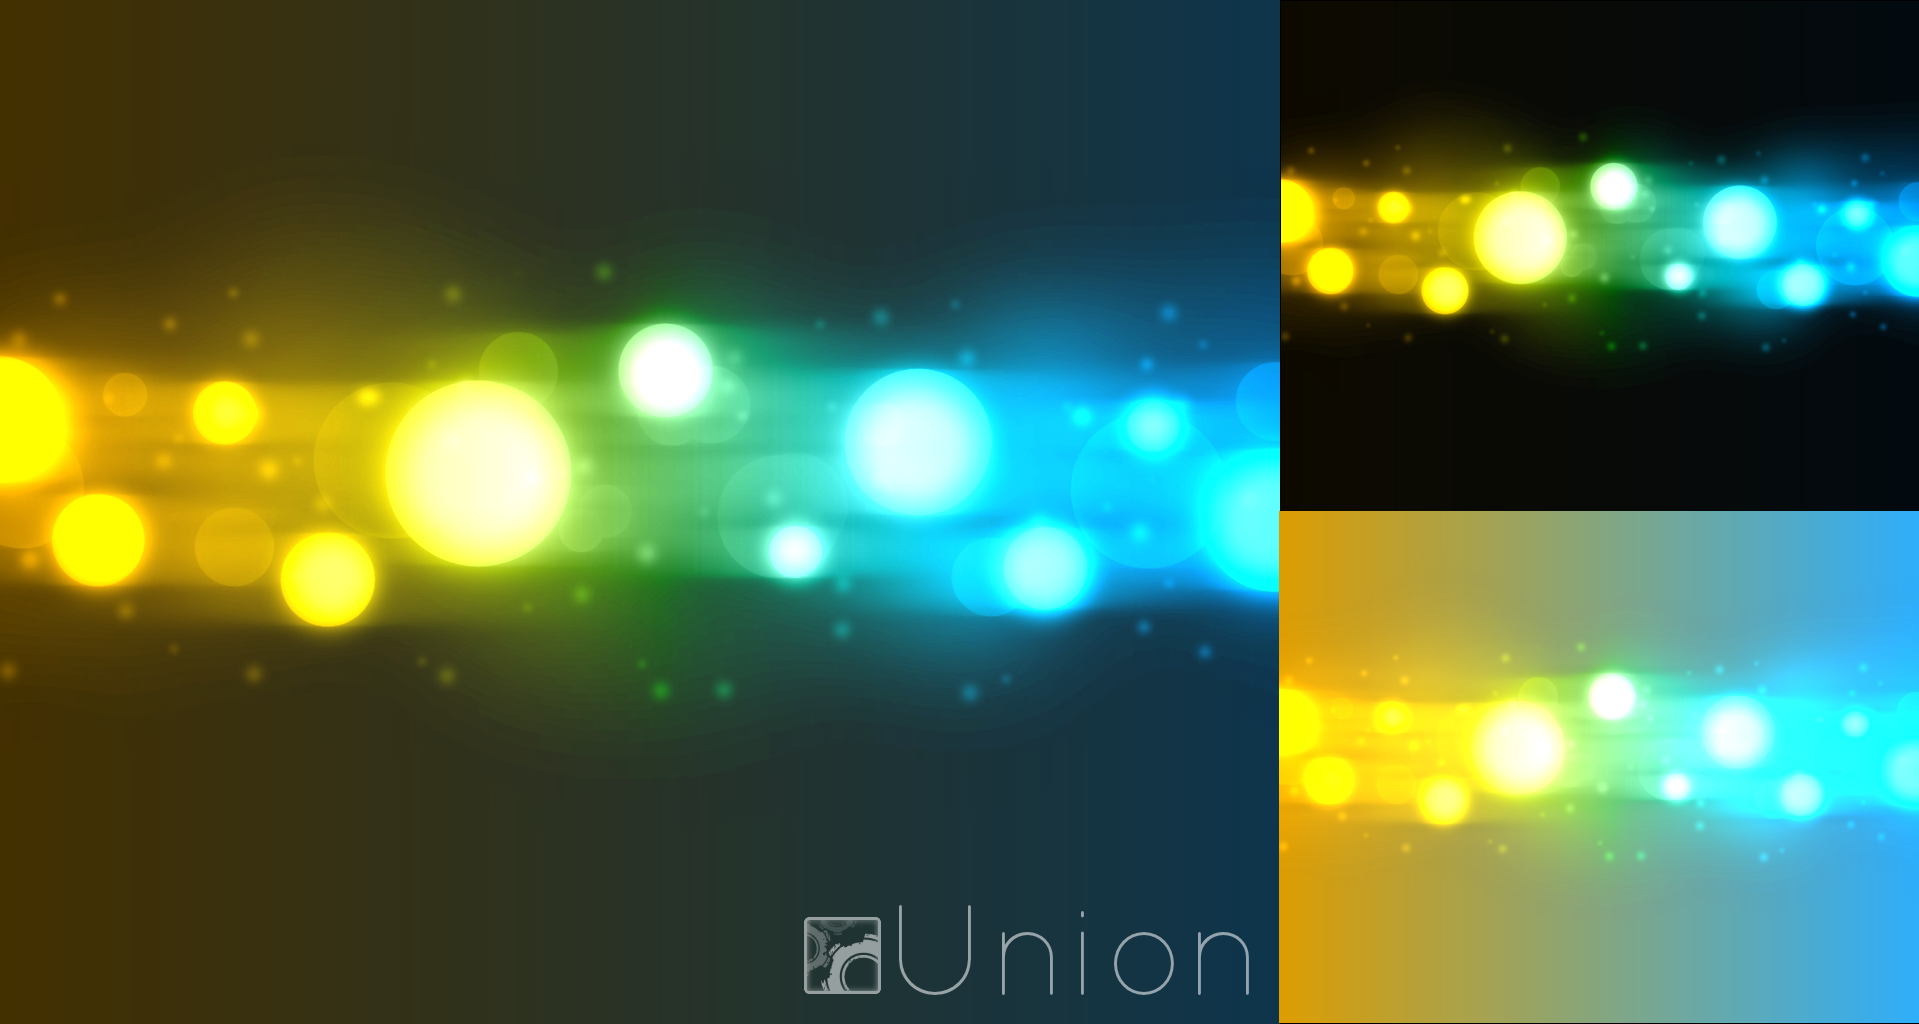 005  union wallpaper pack by sydan d3b9mtx Wallpaper pack 9